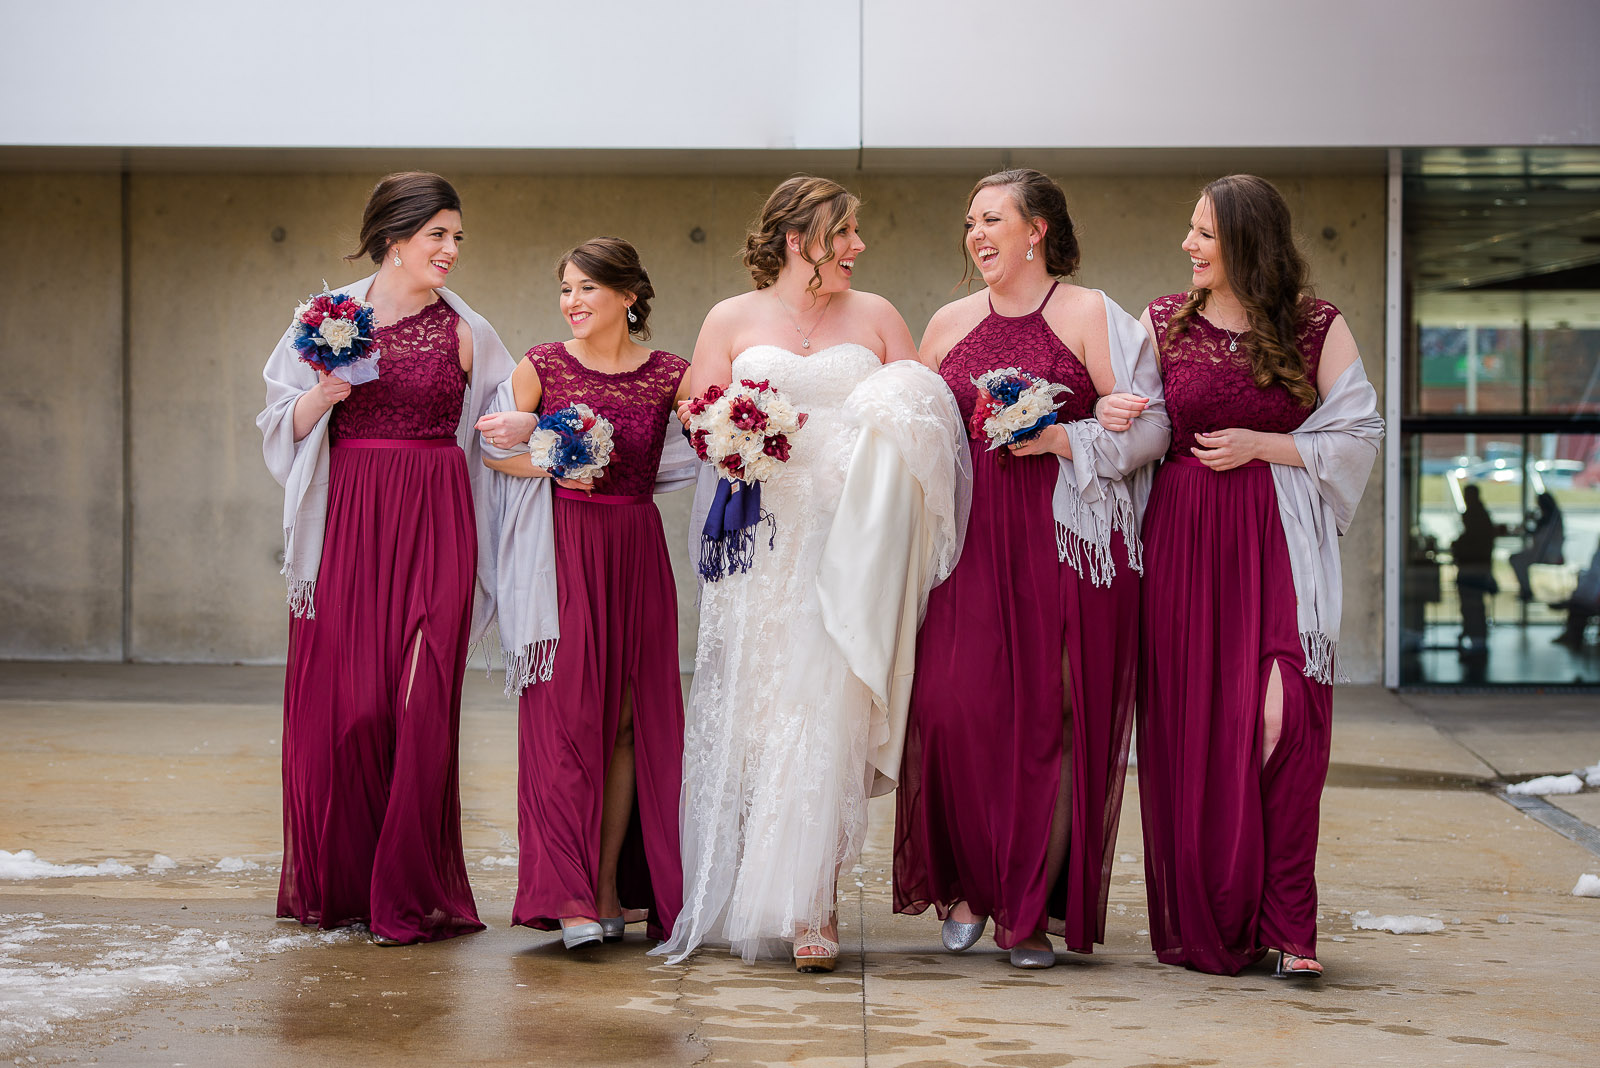 Eric_and_Christy_Photography_Blog_Wedding_Karen_Nick-15